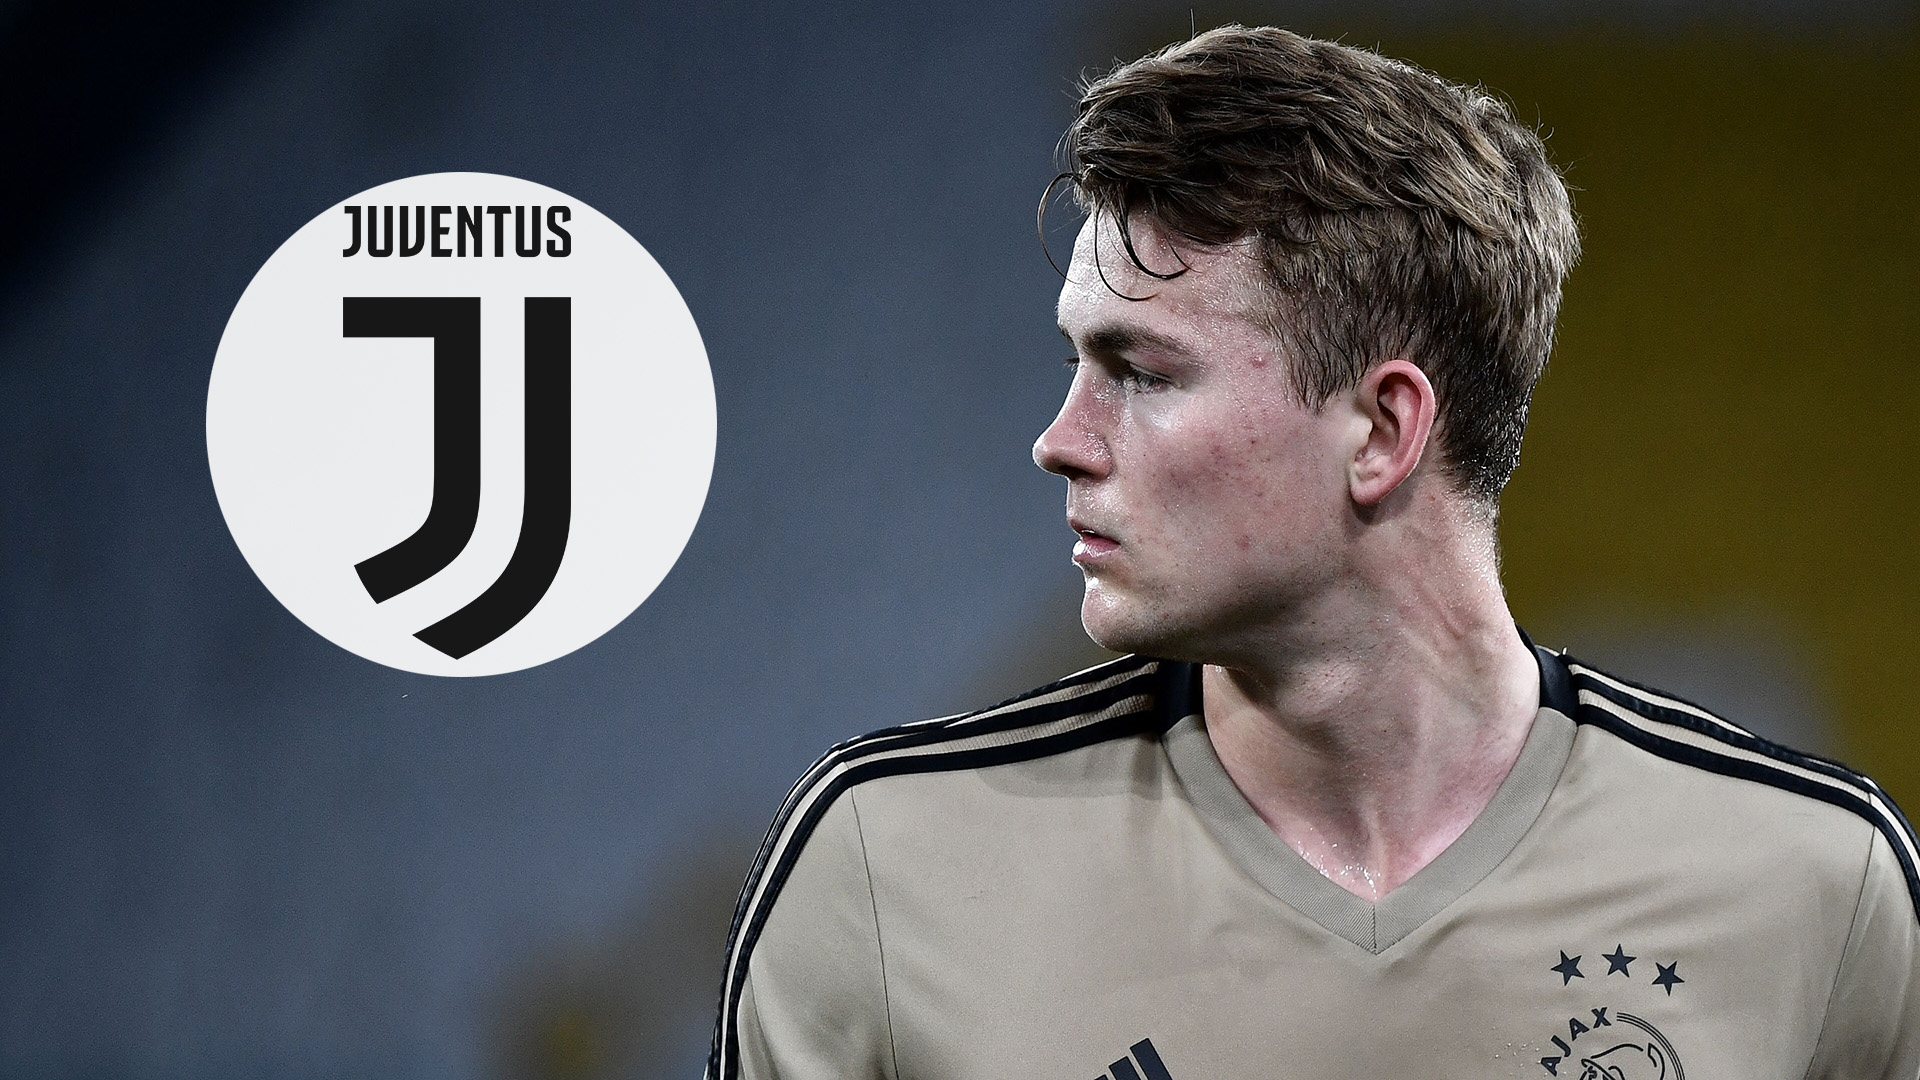 matthijs de ligt transfer centre back arrives in turin to complete juventus move goal com https www goal com en om news de ligt arrives in turin to complete juventus move 11bbndivmklgg12lpjd67bvr79